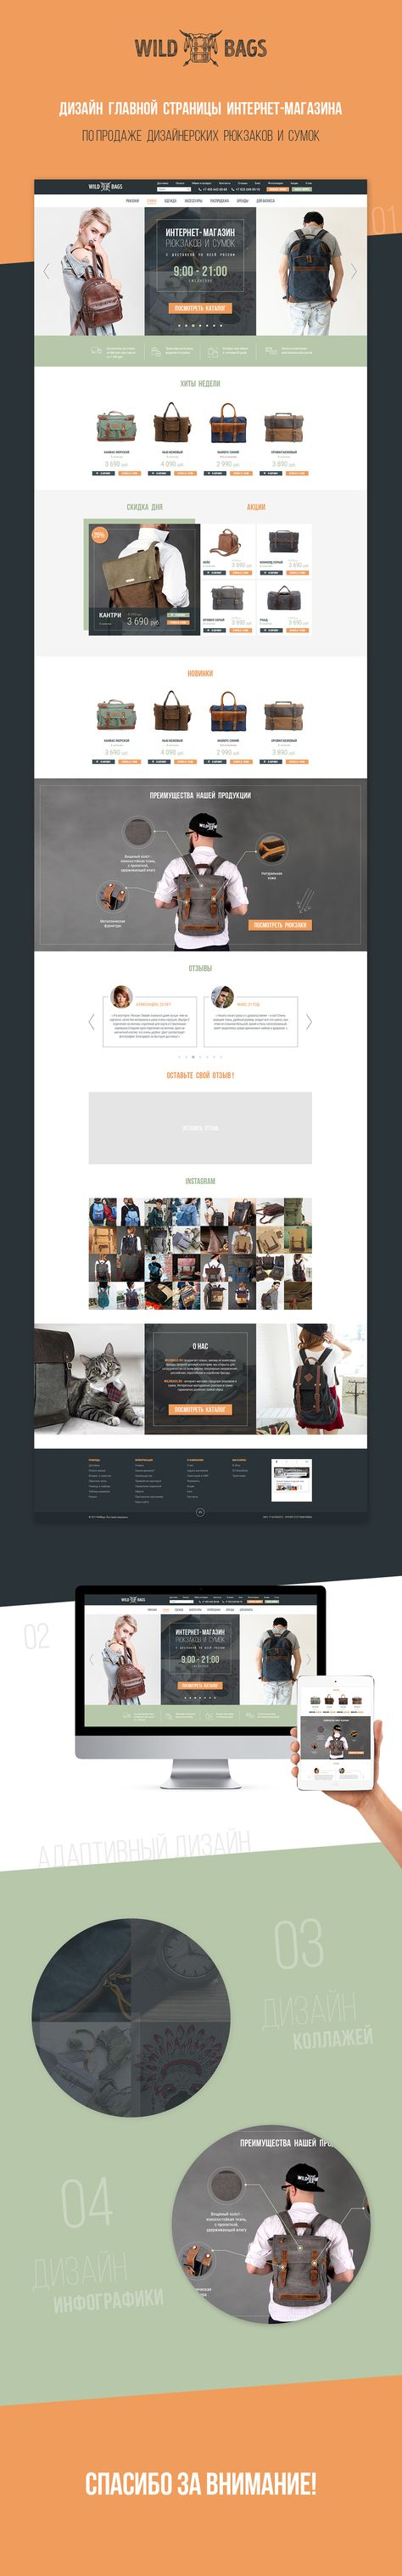 Online store design for Wildbags